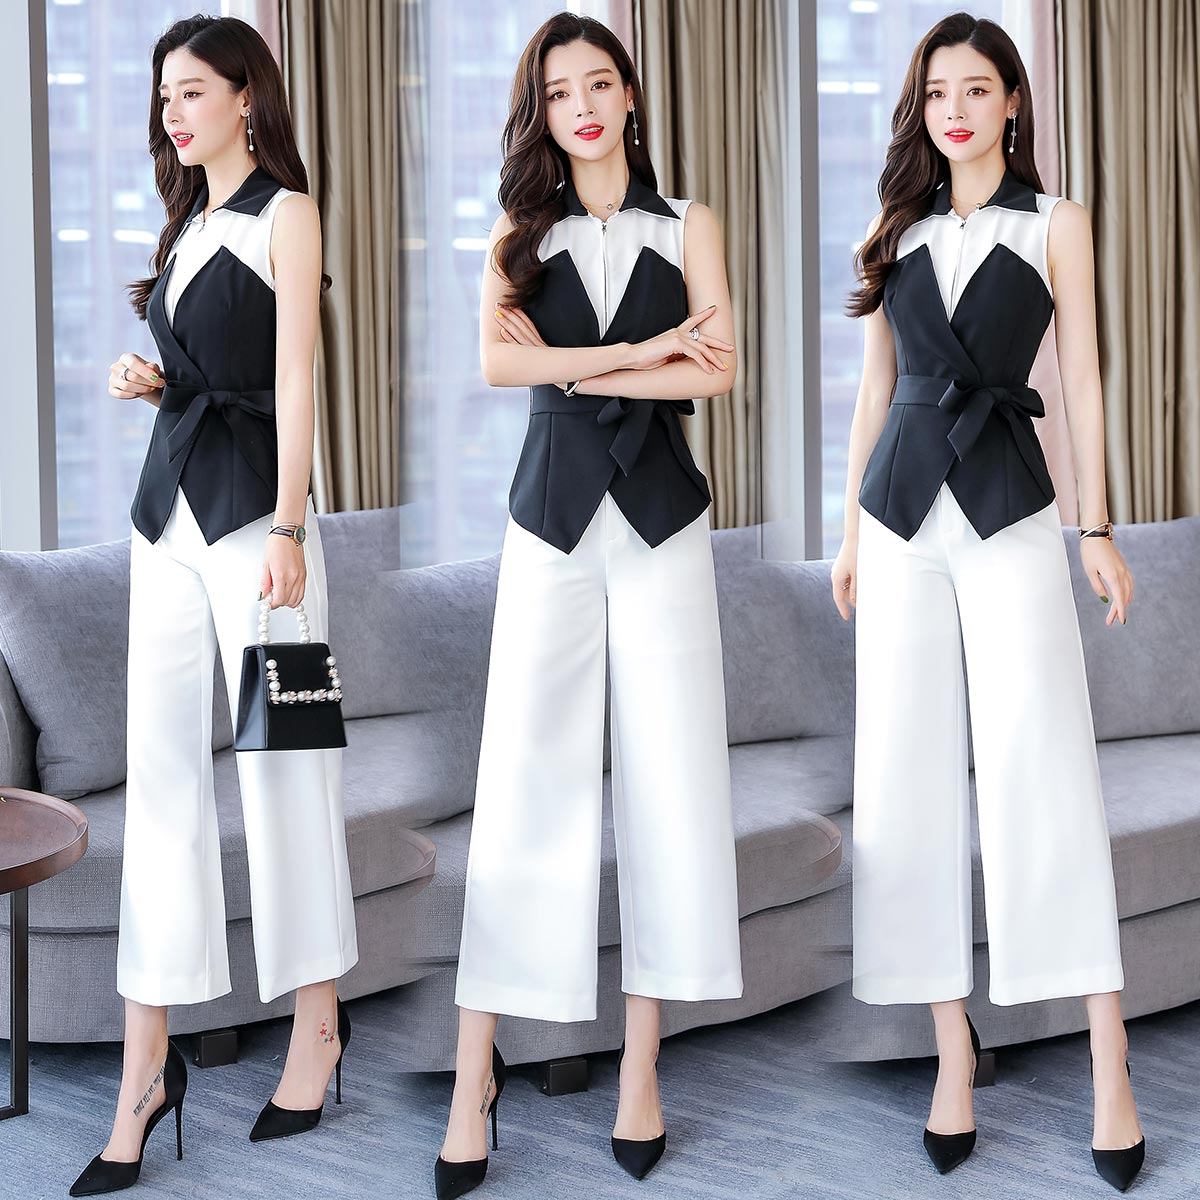 Sleeveless Two Piece Set Office Lady Top&pants Set Women's Summer Suit Conjunto Feminino Ensemble Femme Deux Pieces Woman Suit